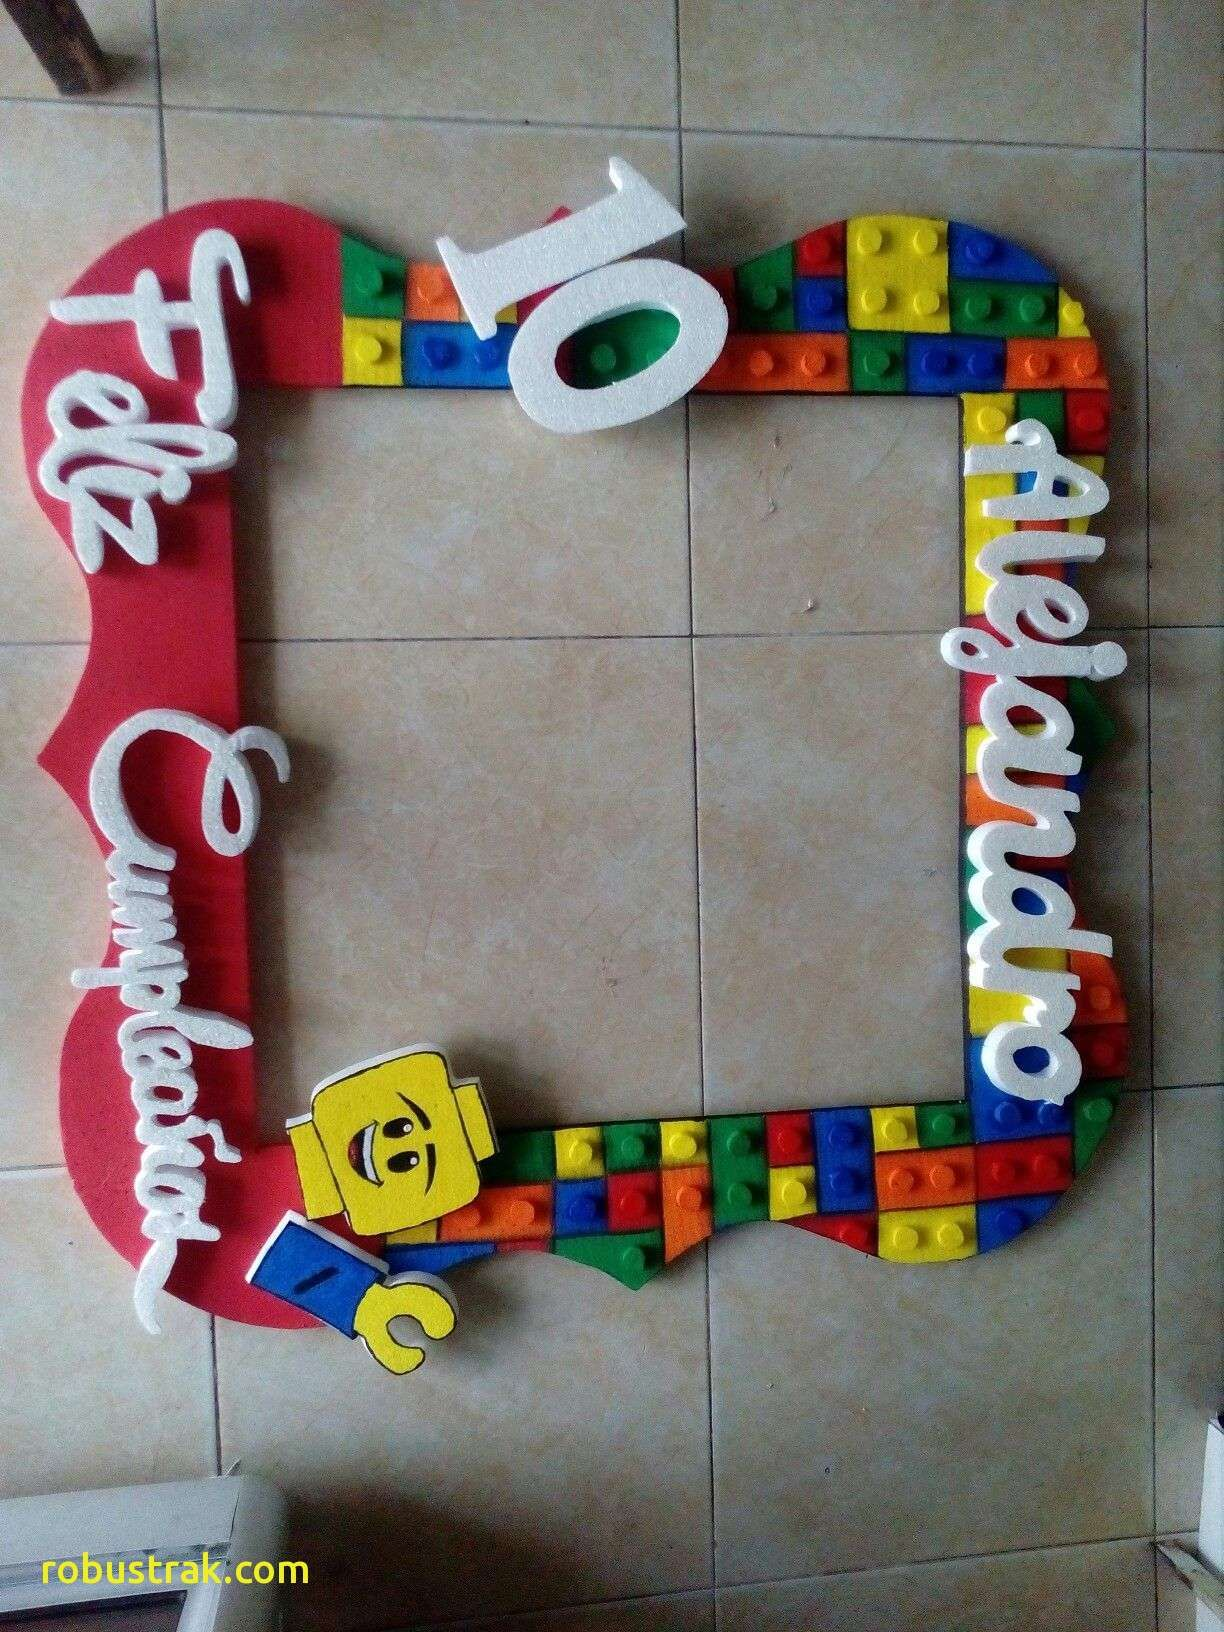 Christmas Party Ideas Decorations Lego Party Decorations Lego Decorations Lego Birthday Party